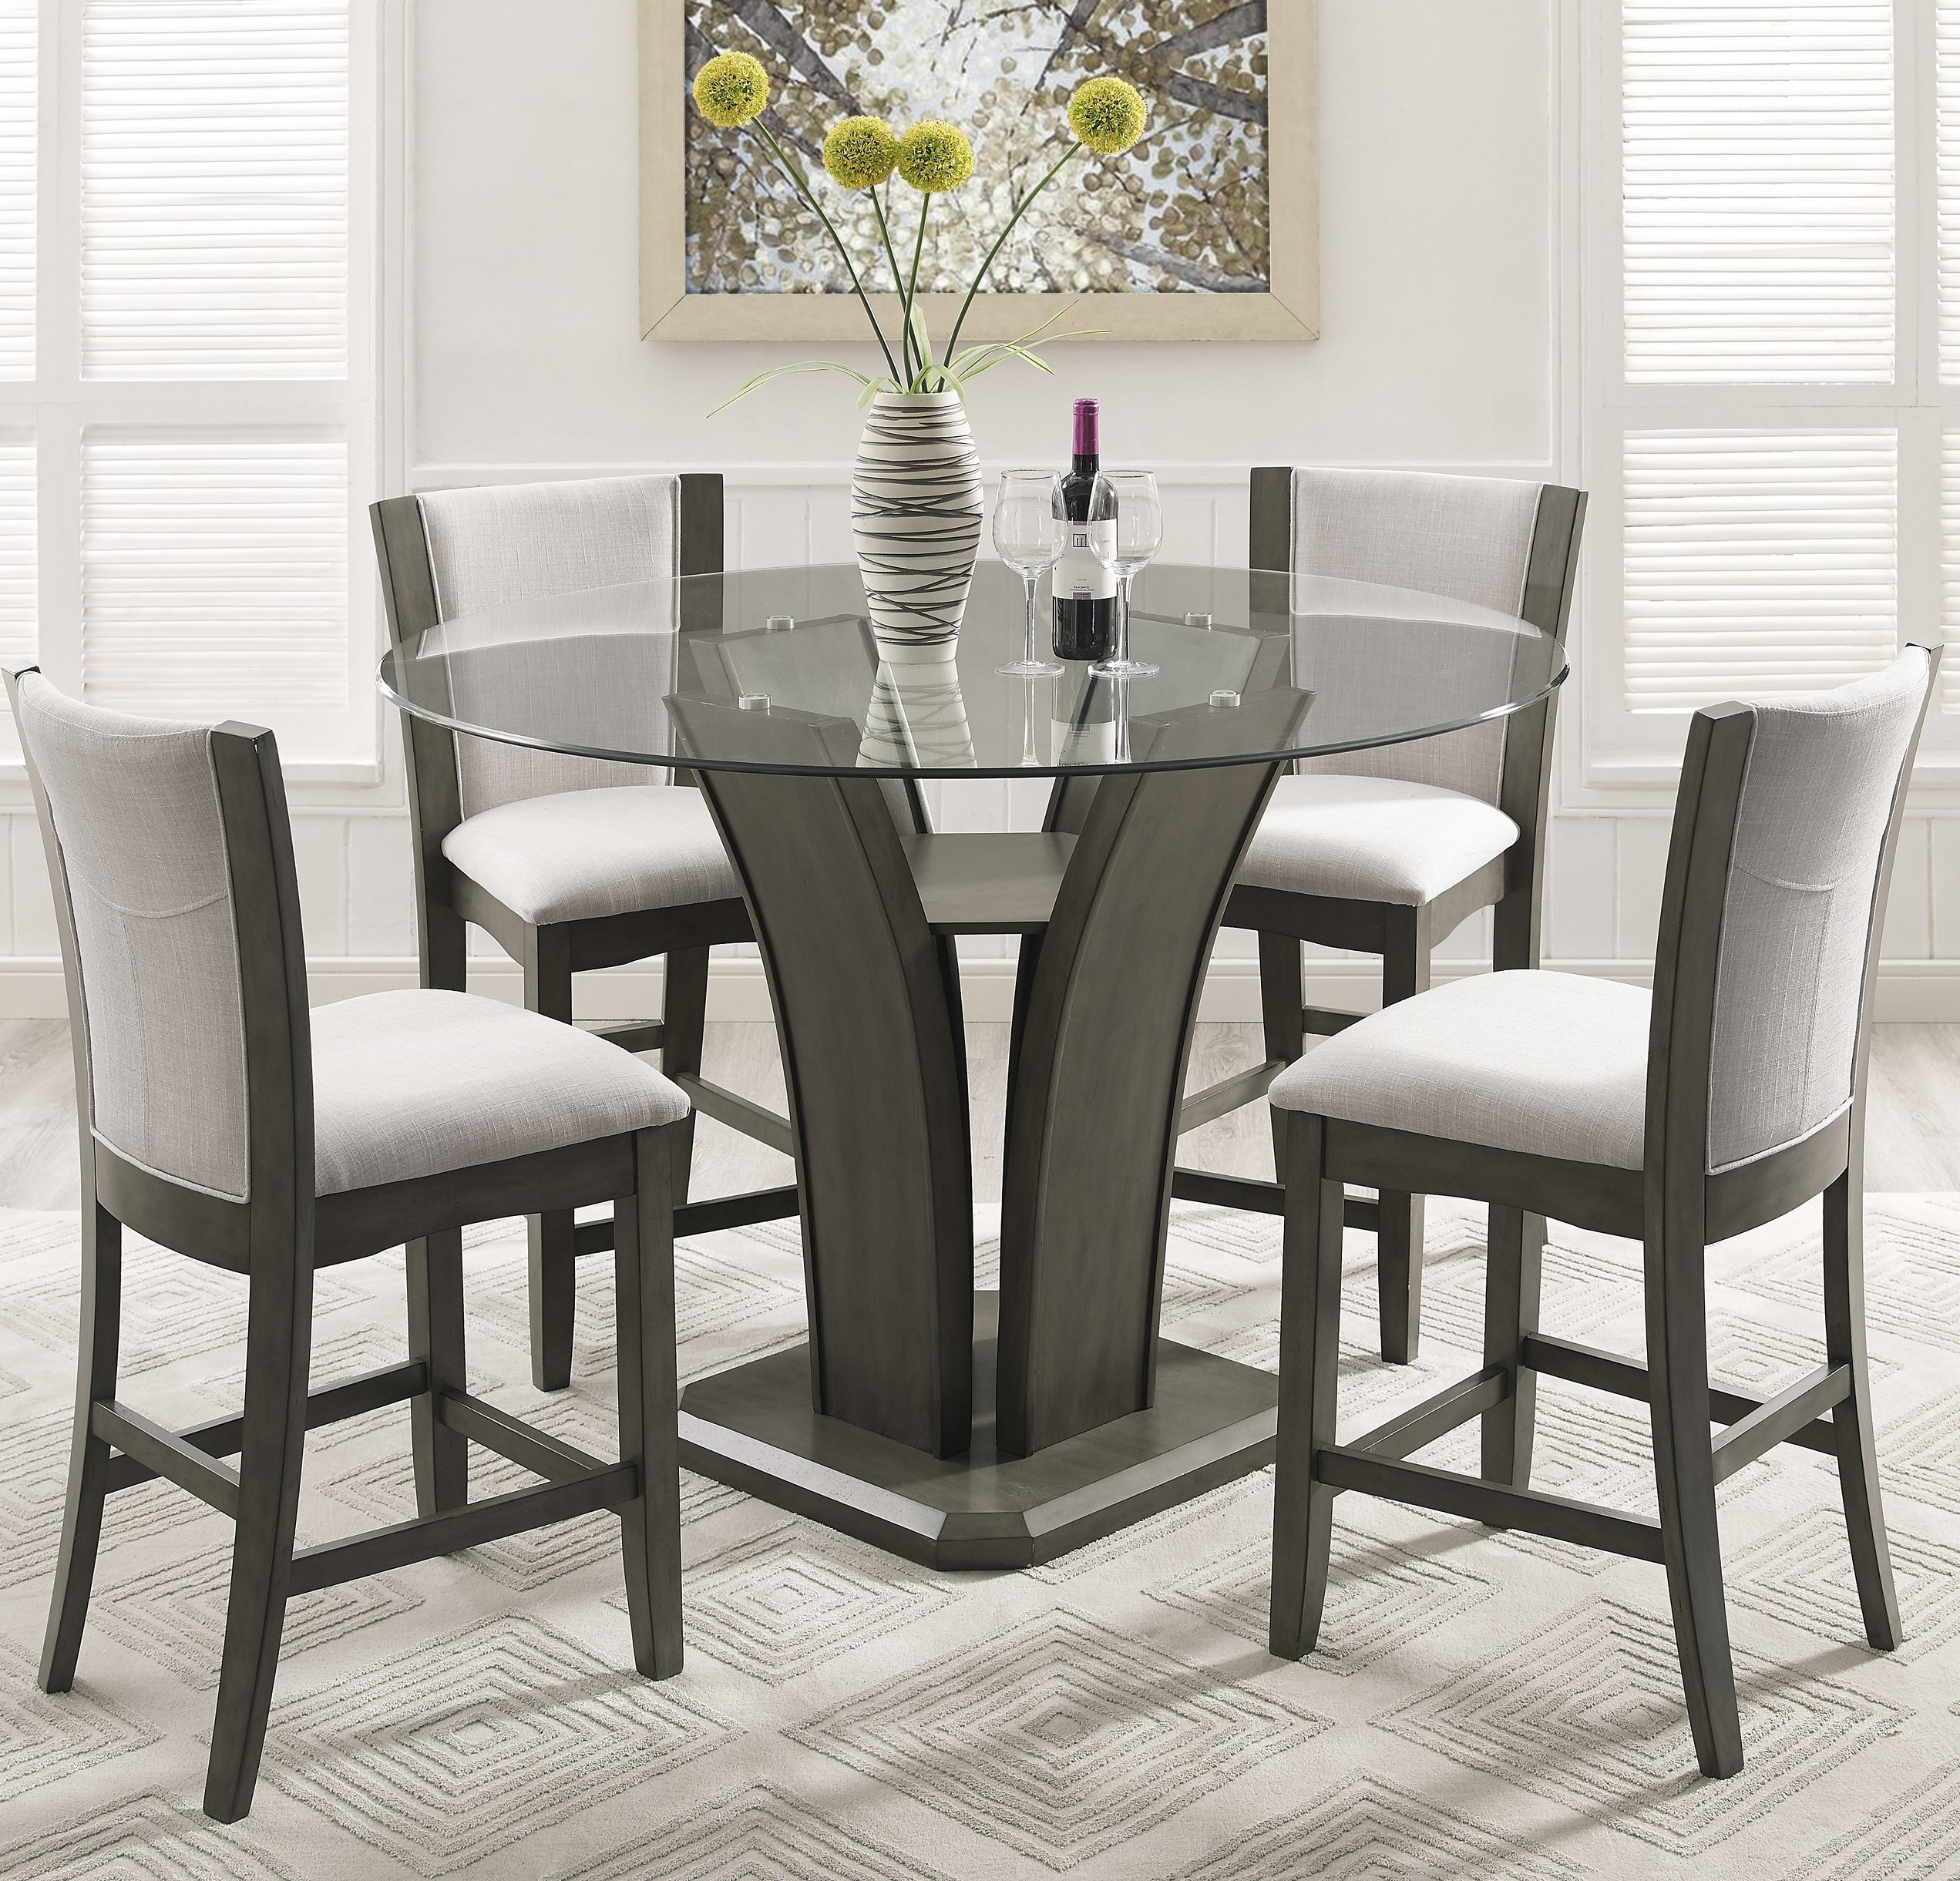 Beautiful Table Runners And Counter High Table And Chairs – Arvesi Inside Most Popular Rocco 9 Piece Extension Counter Sets (Image 4 of 20)